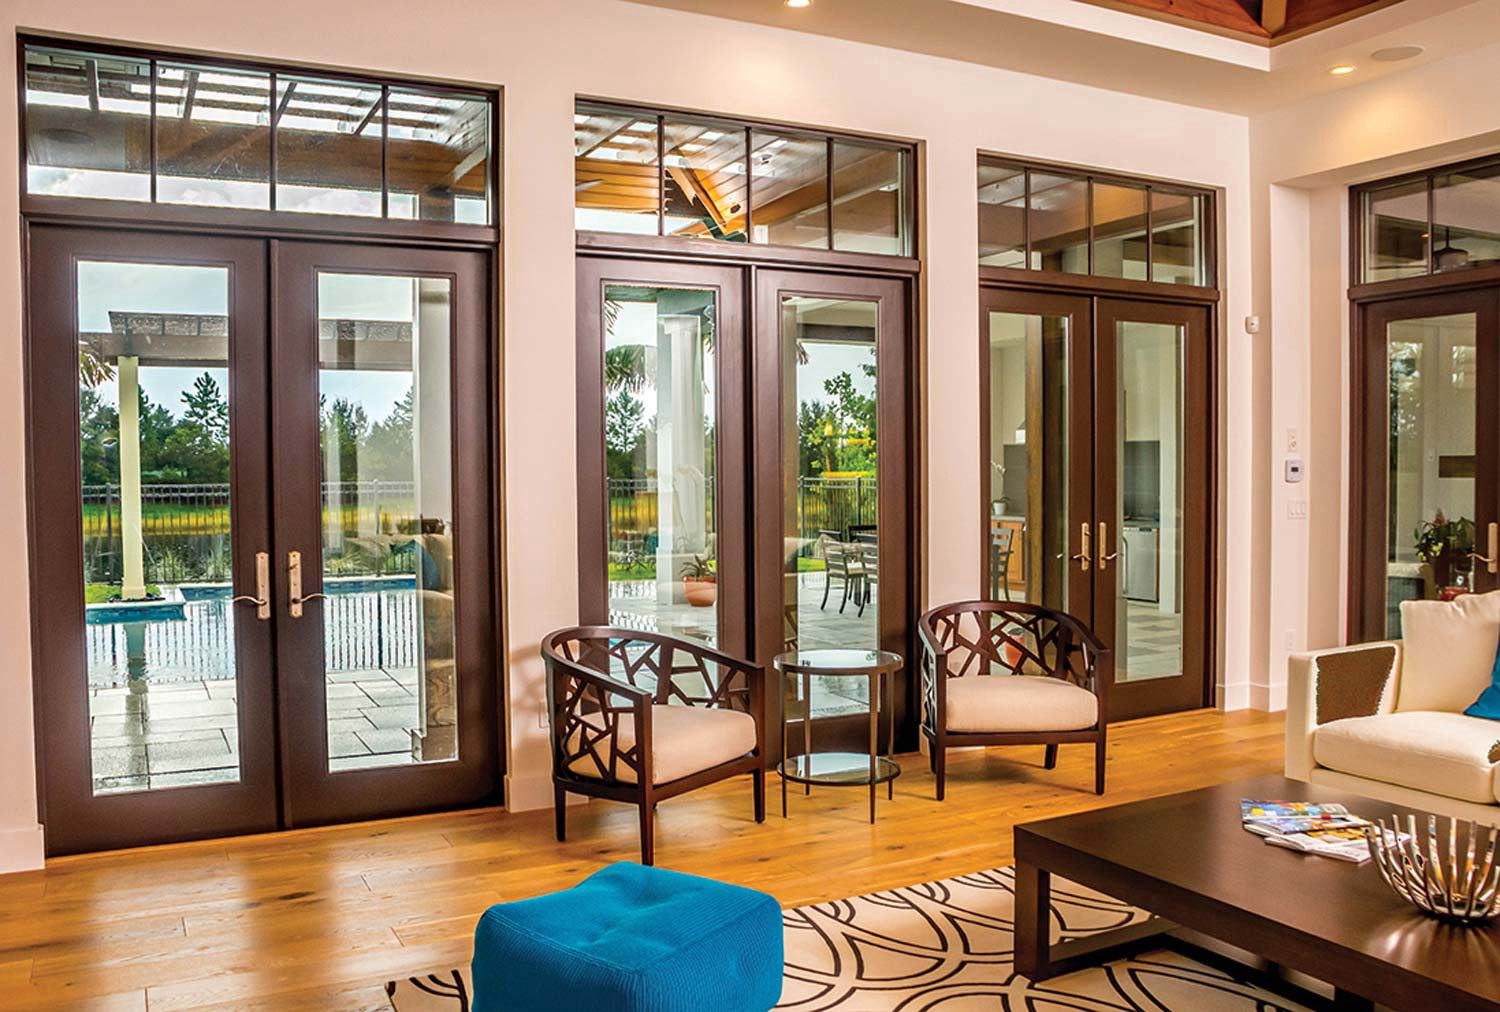 Benefits Of French Patio Doors Peach Building Products Medium